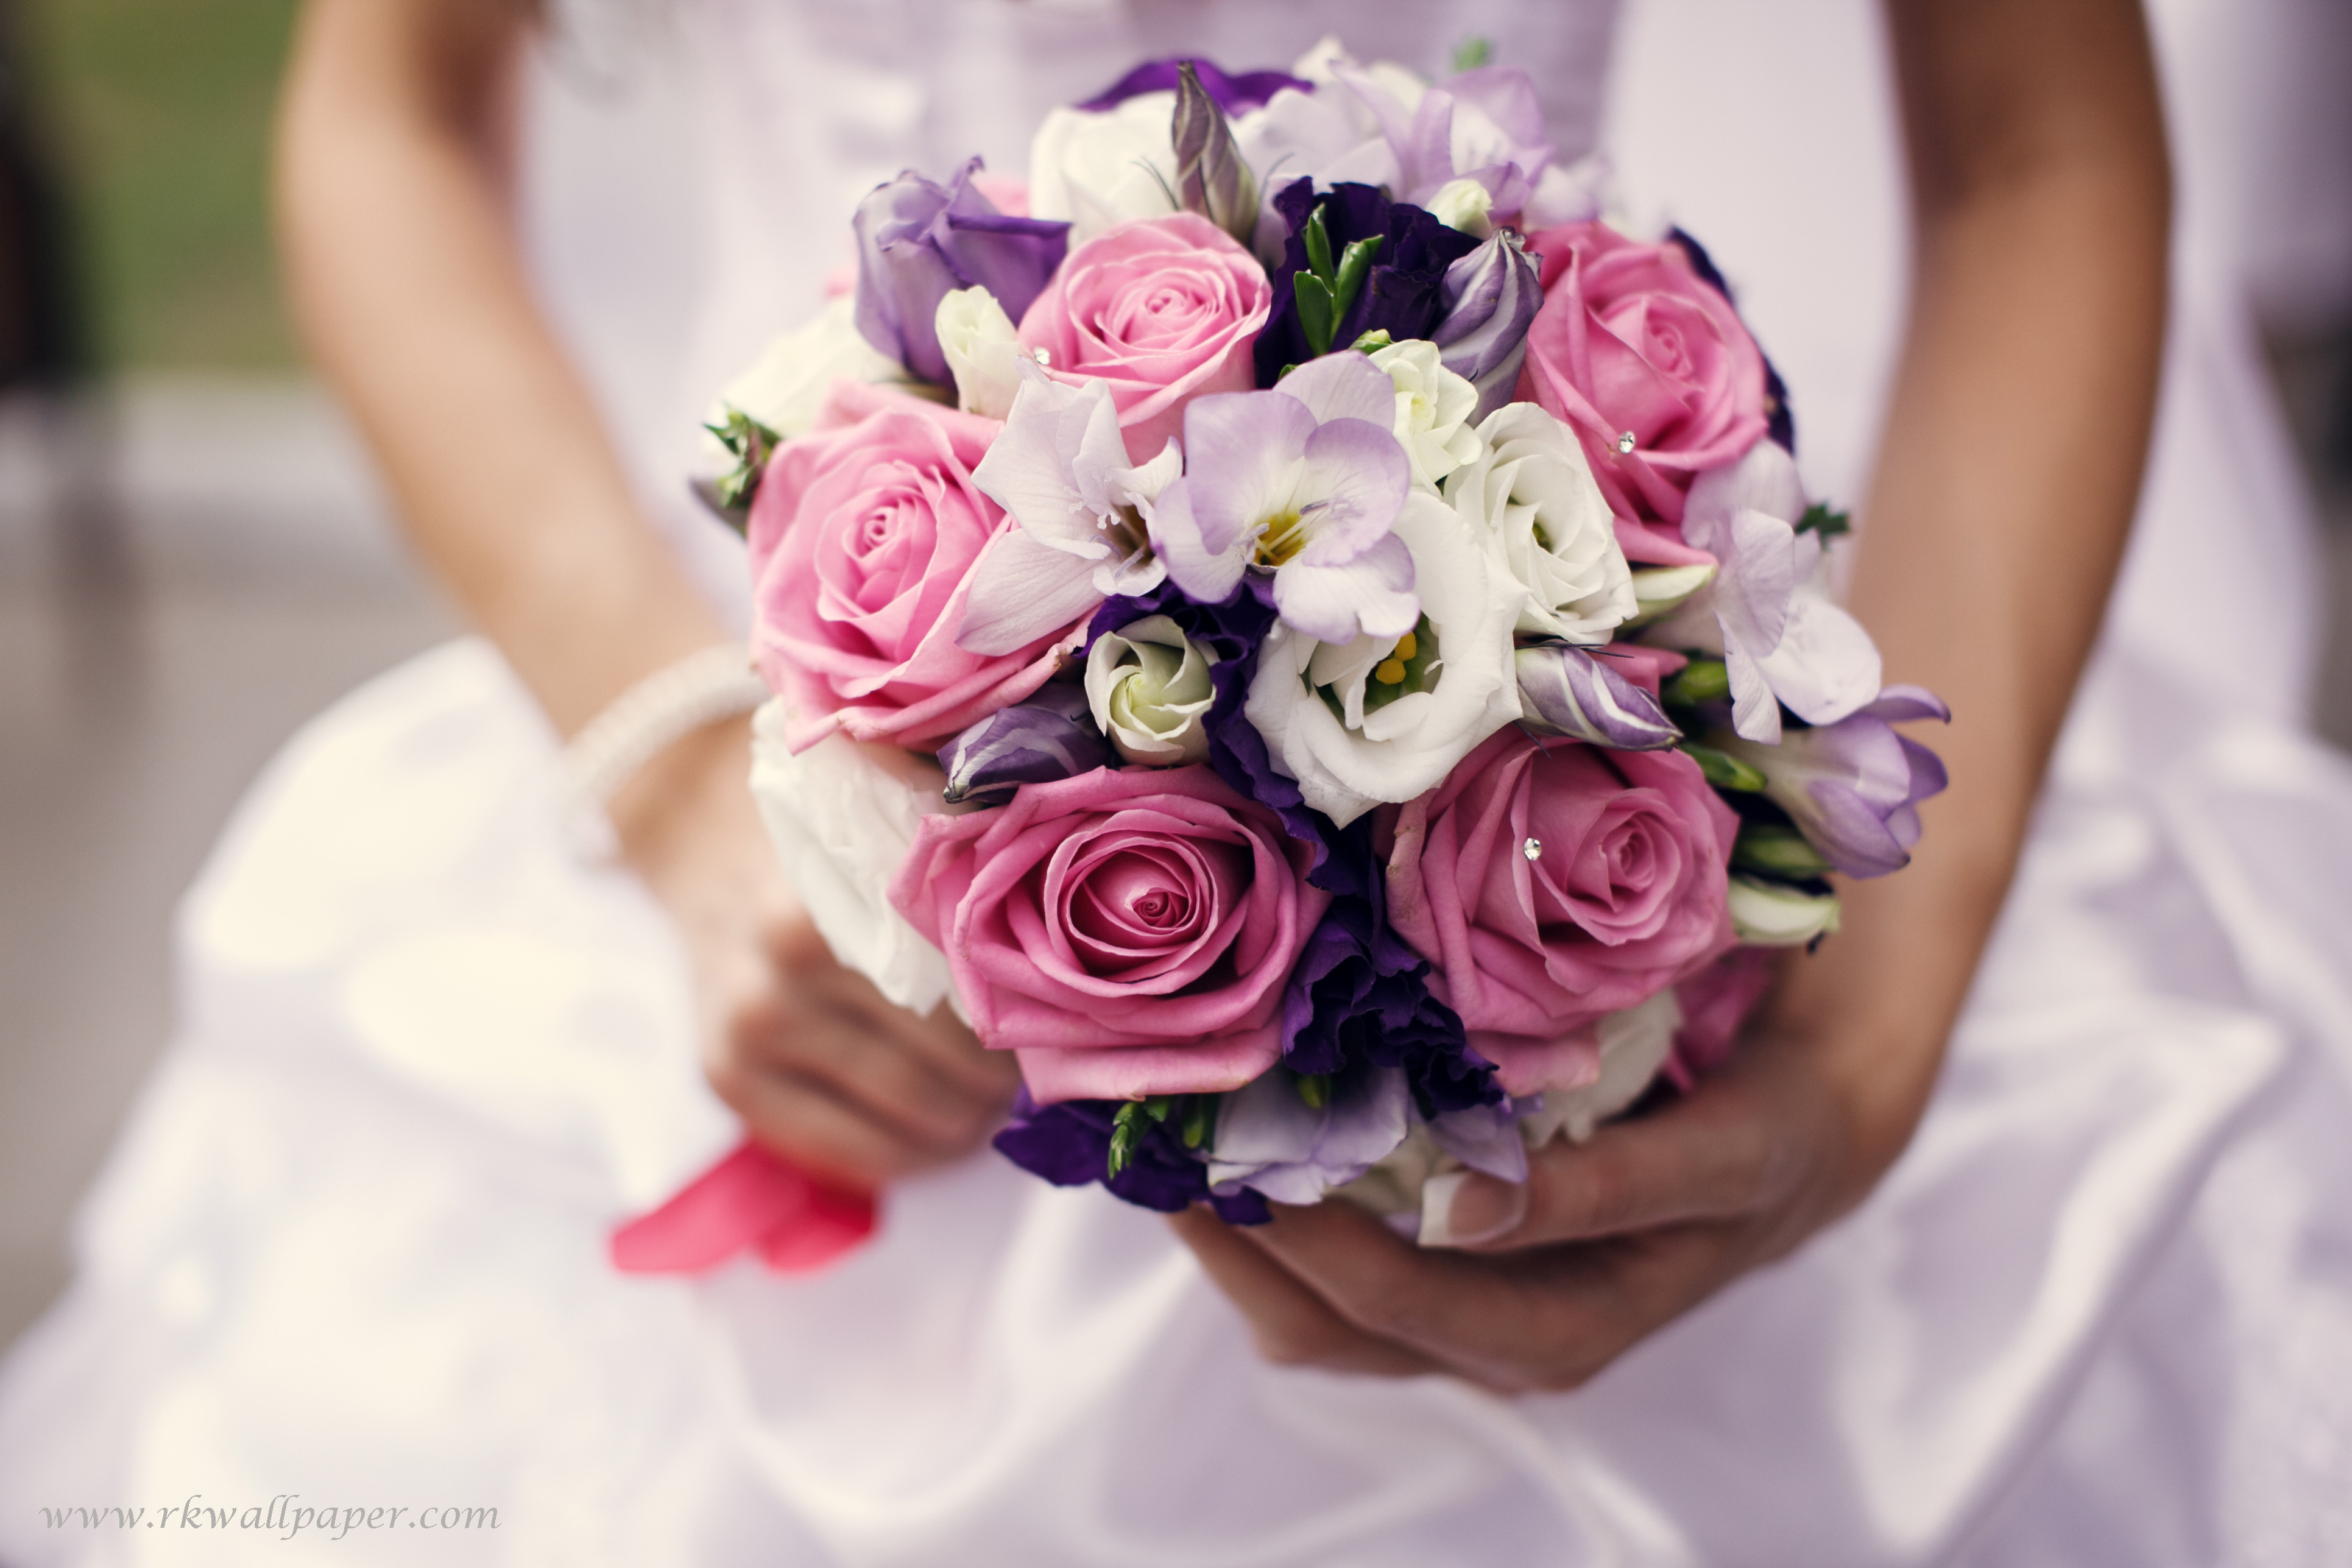 flowers used in wedding bouquets photo - 1